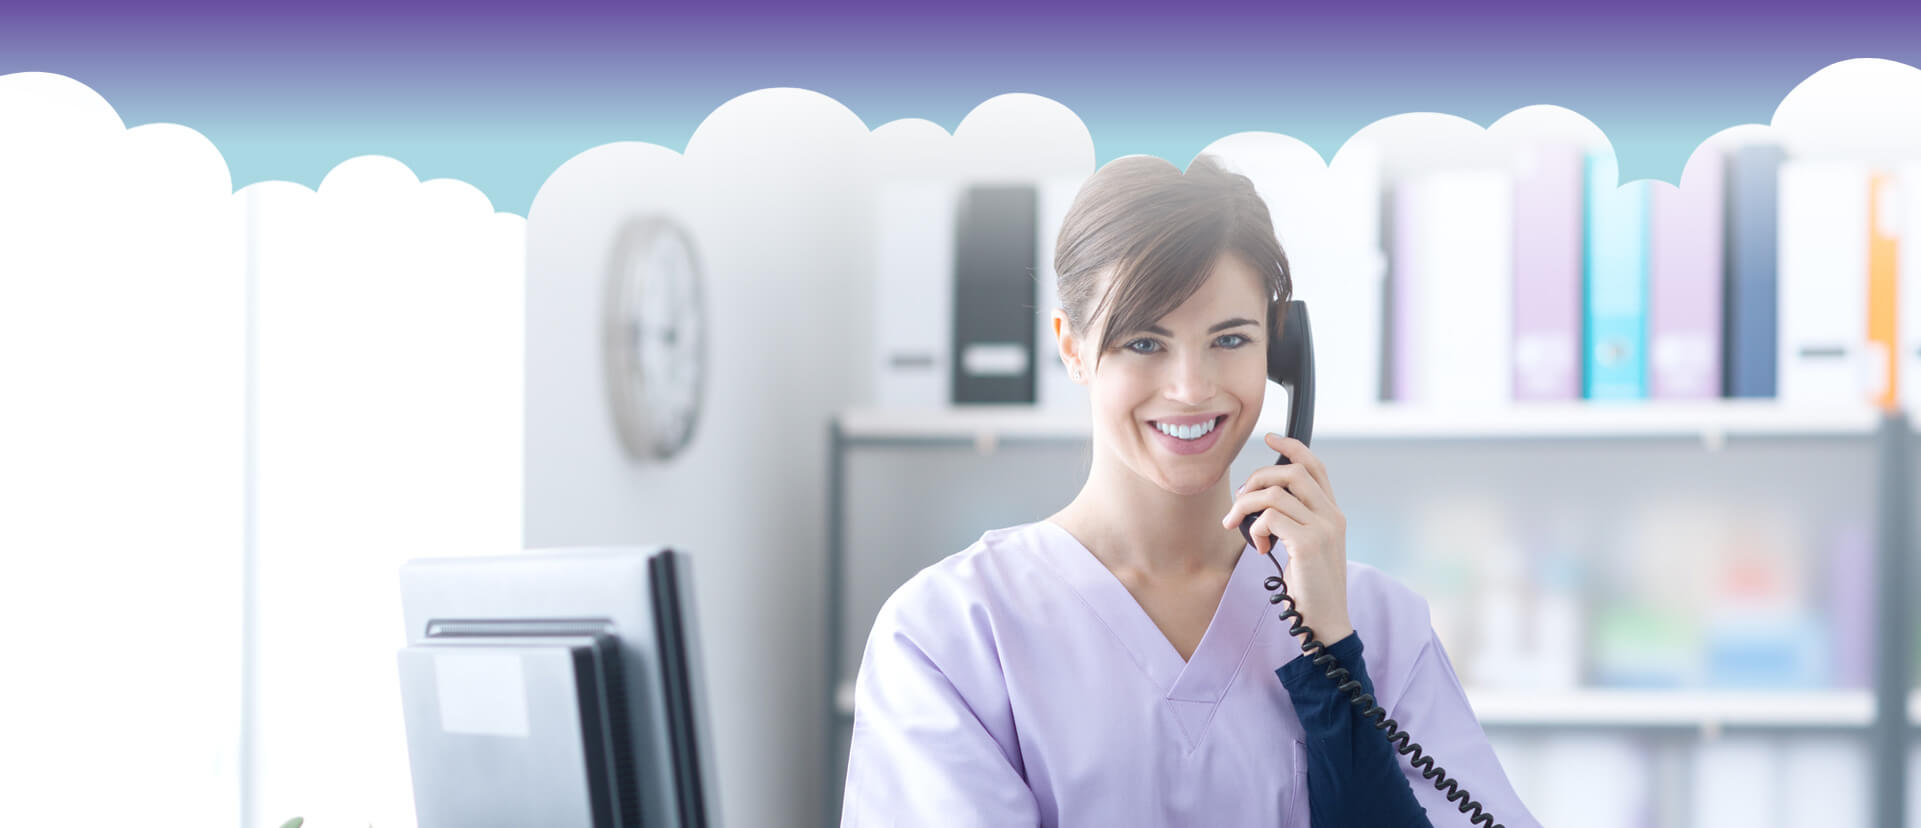 Dental receptionist answering a phone call smiling at the camera